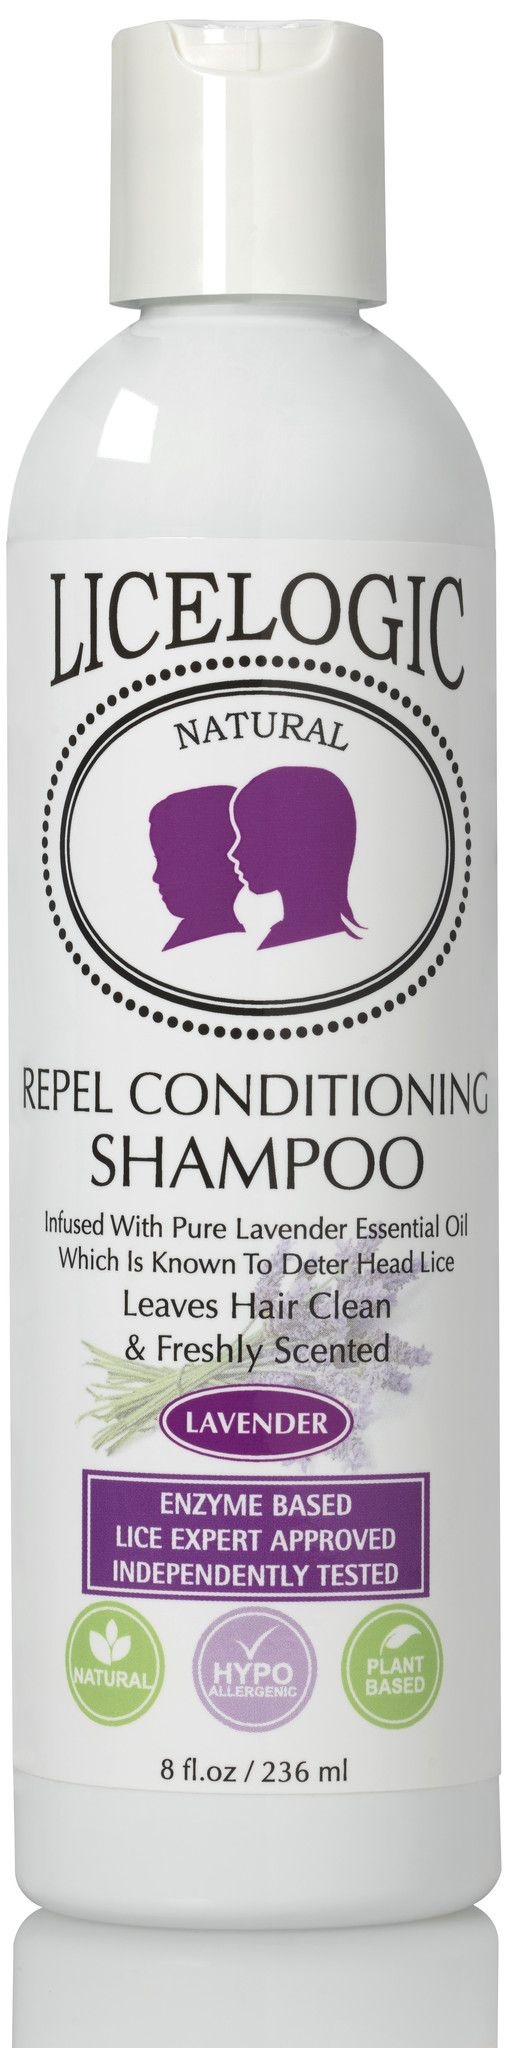 LiceLogic Repel Conditioning Shampoo - Lavender